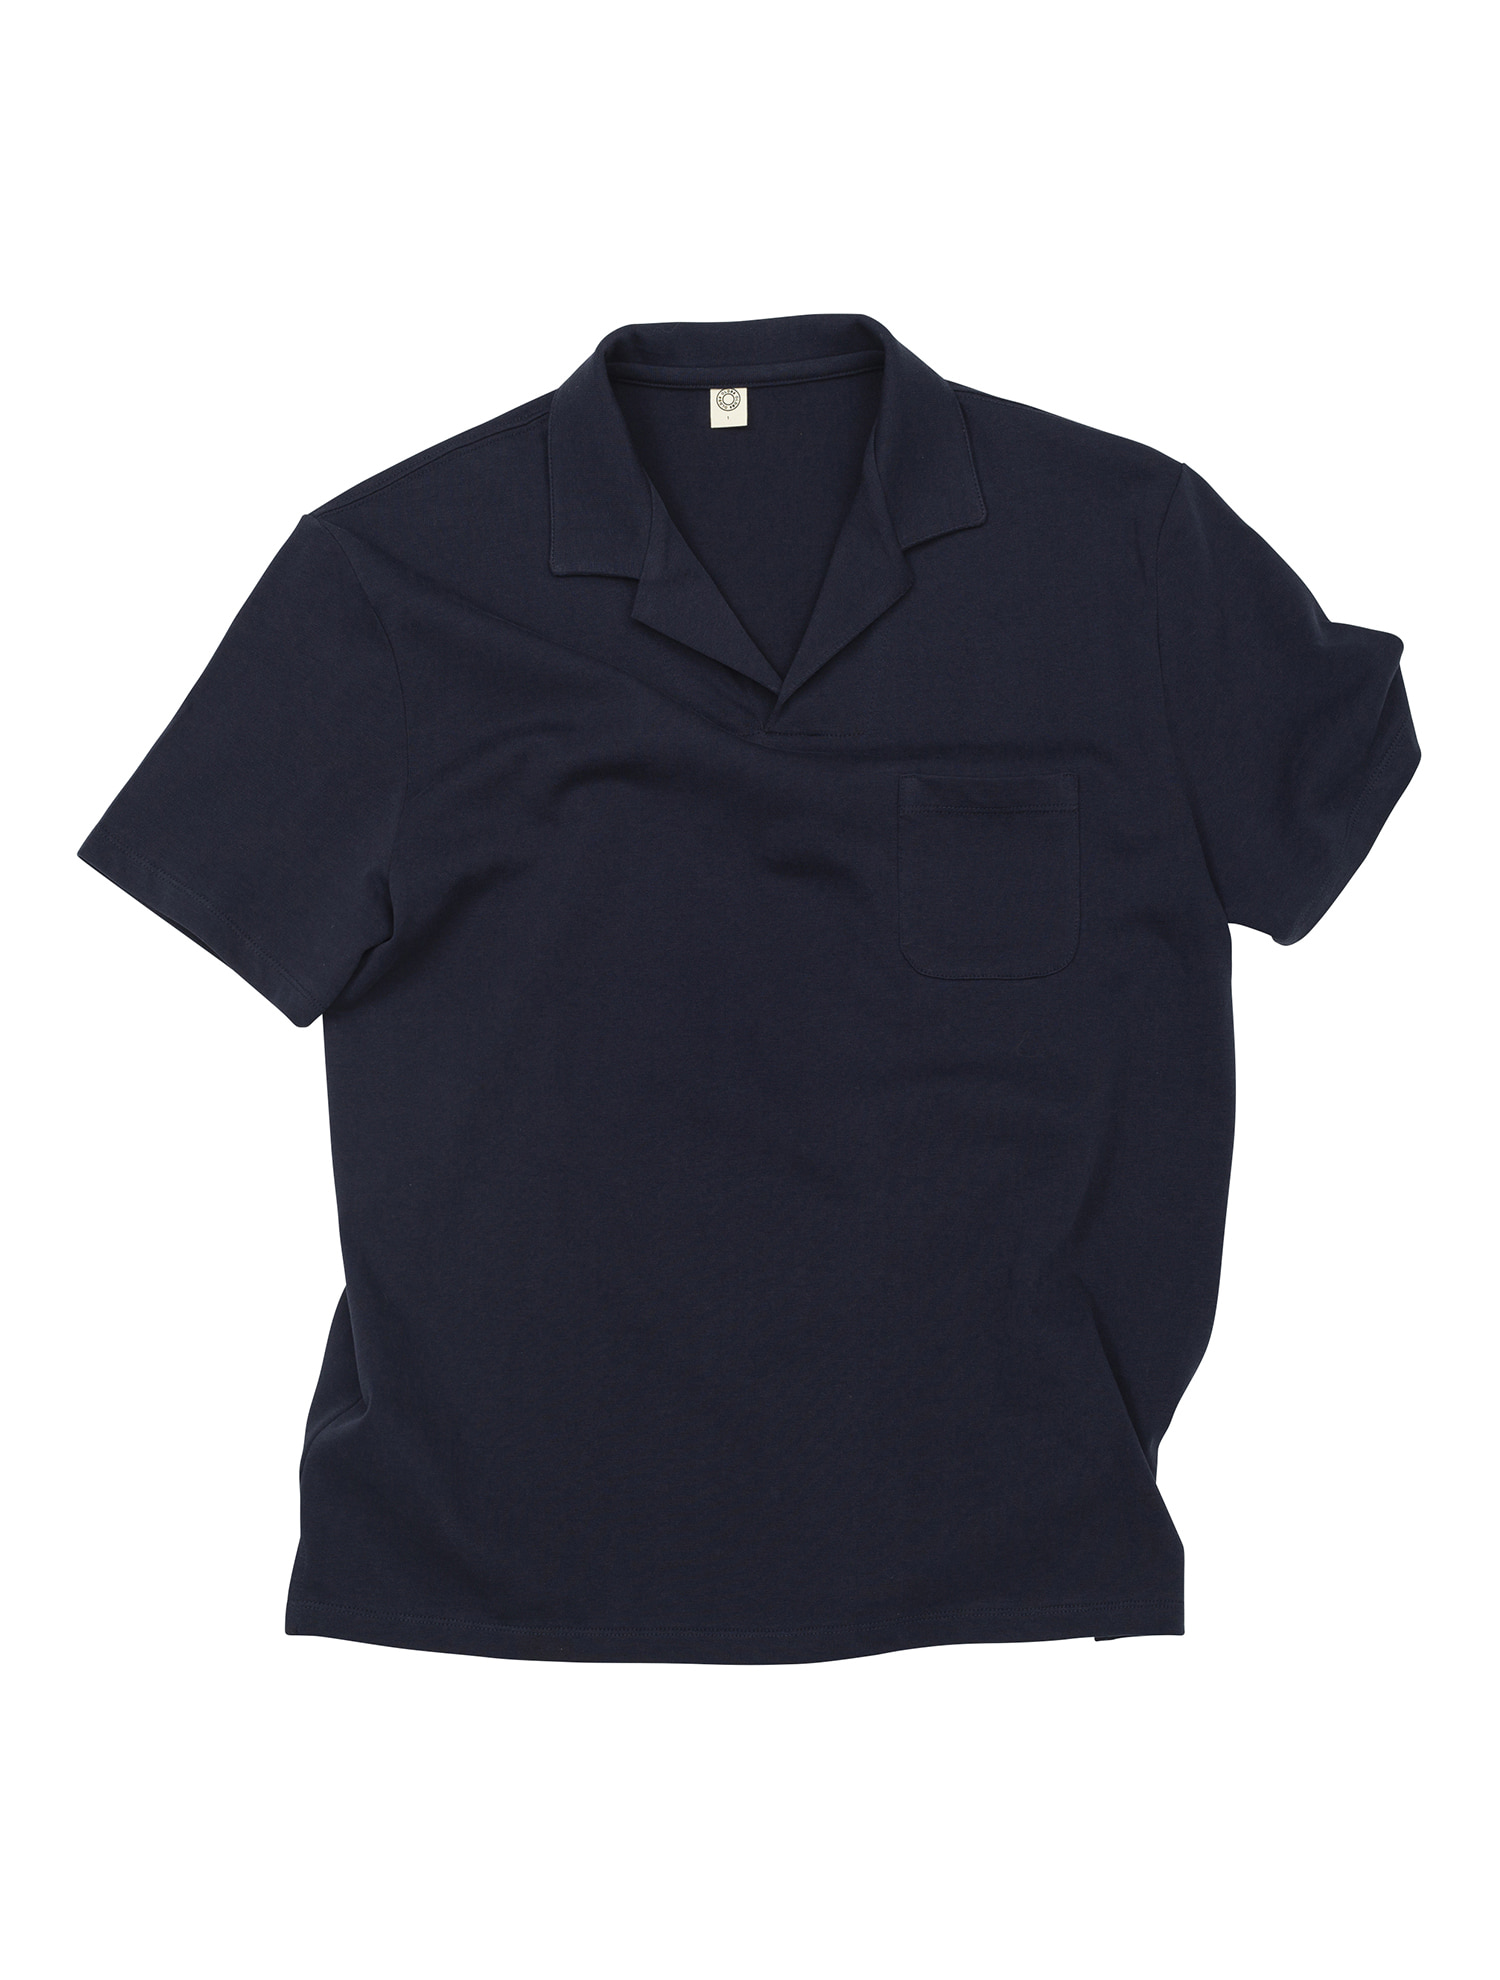 [올드비] GEN COTTON OPEN COLLAR POLO SHIRT NAVY